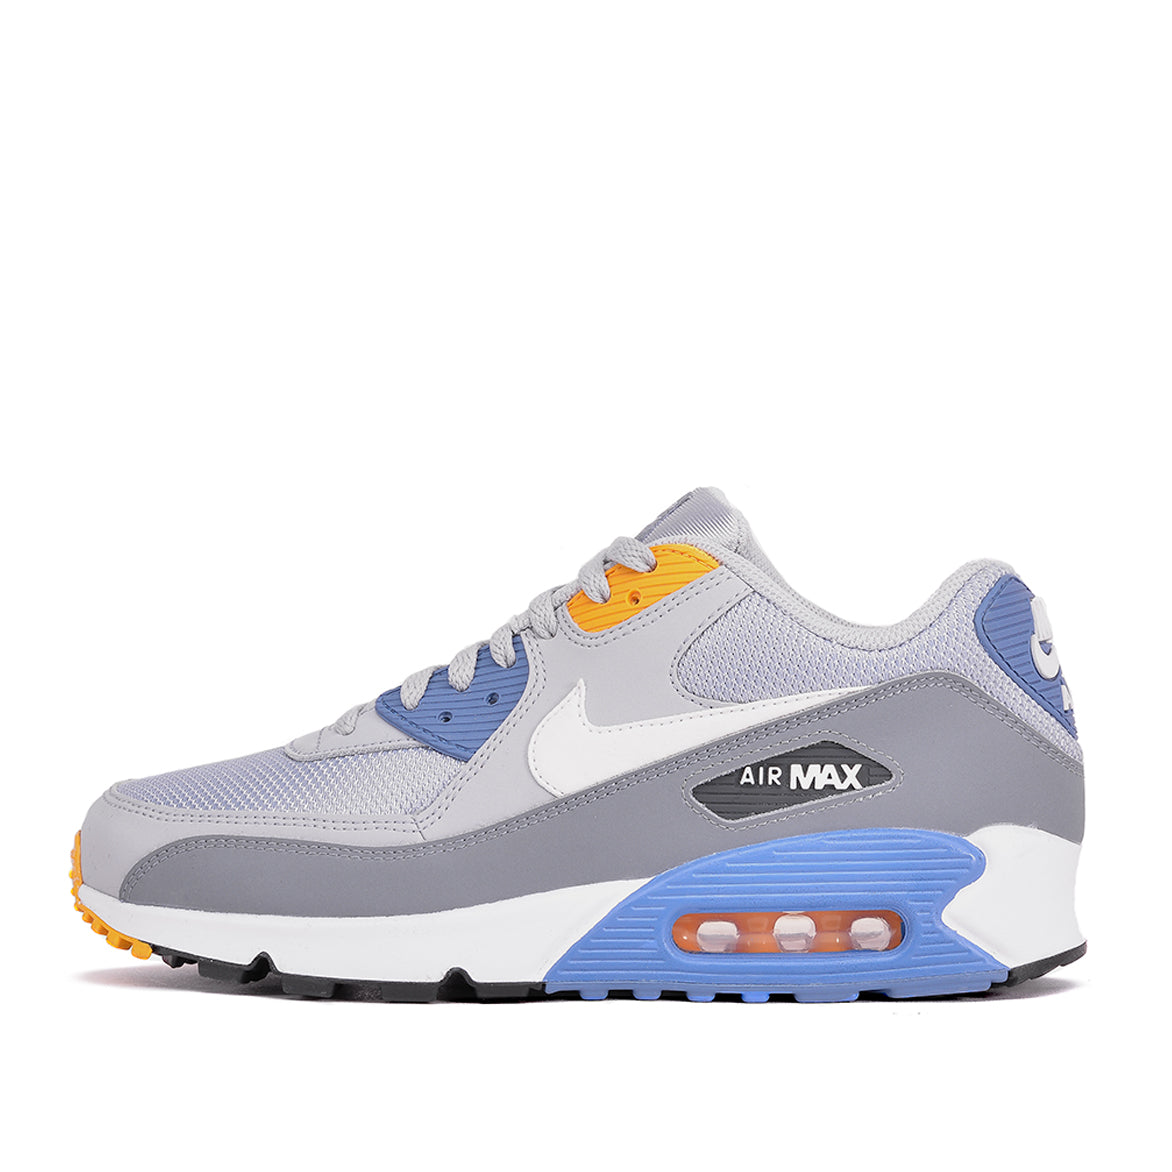 newest eb676 d73f6 AIR MAX 90 ESSENTIAL - WOLF GREY   WHITE   INDIGO STORM   City Blue